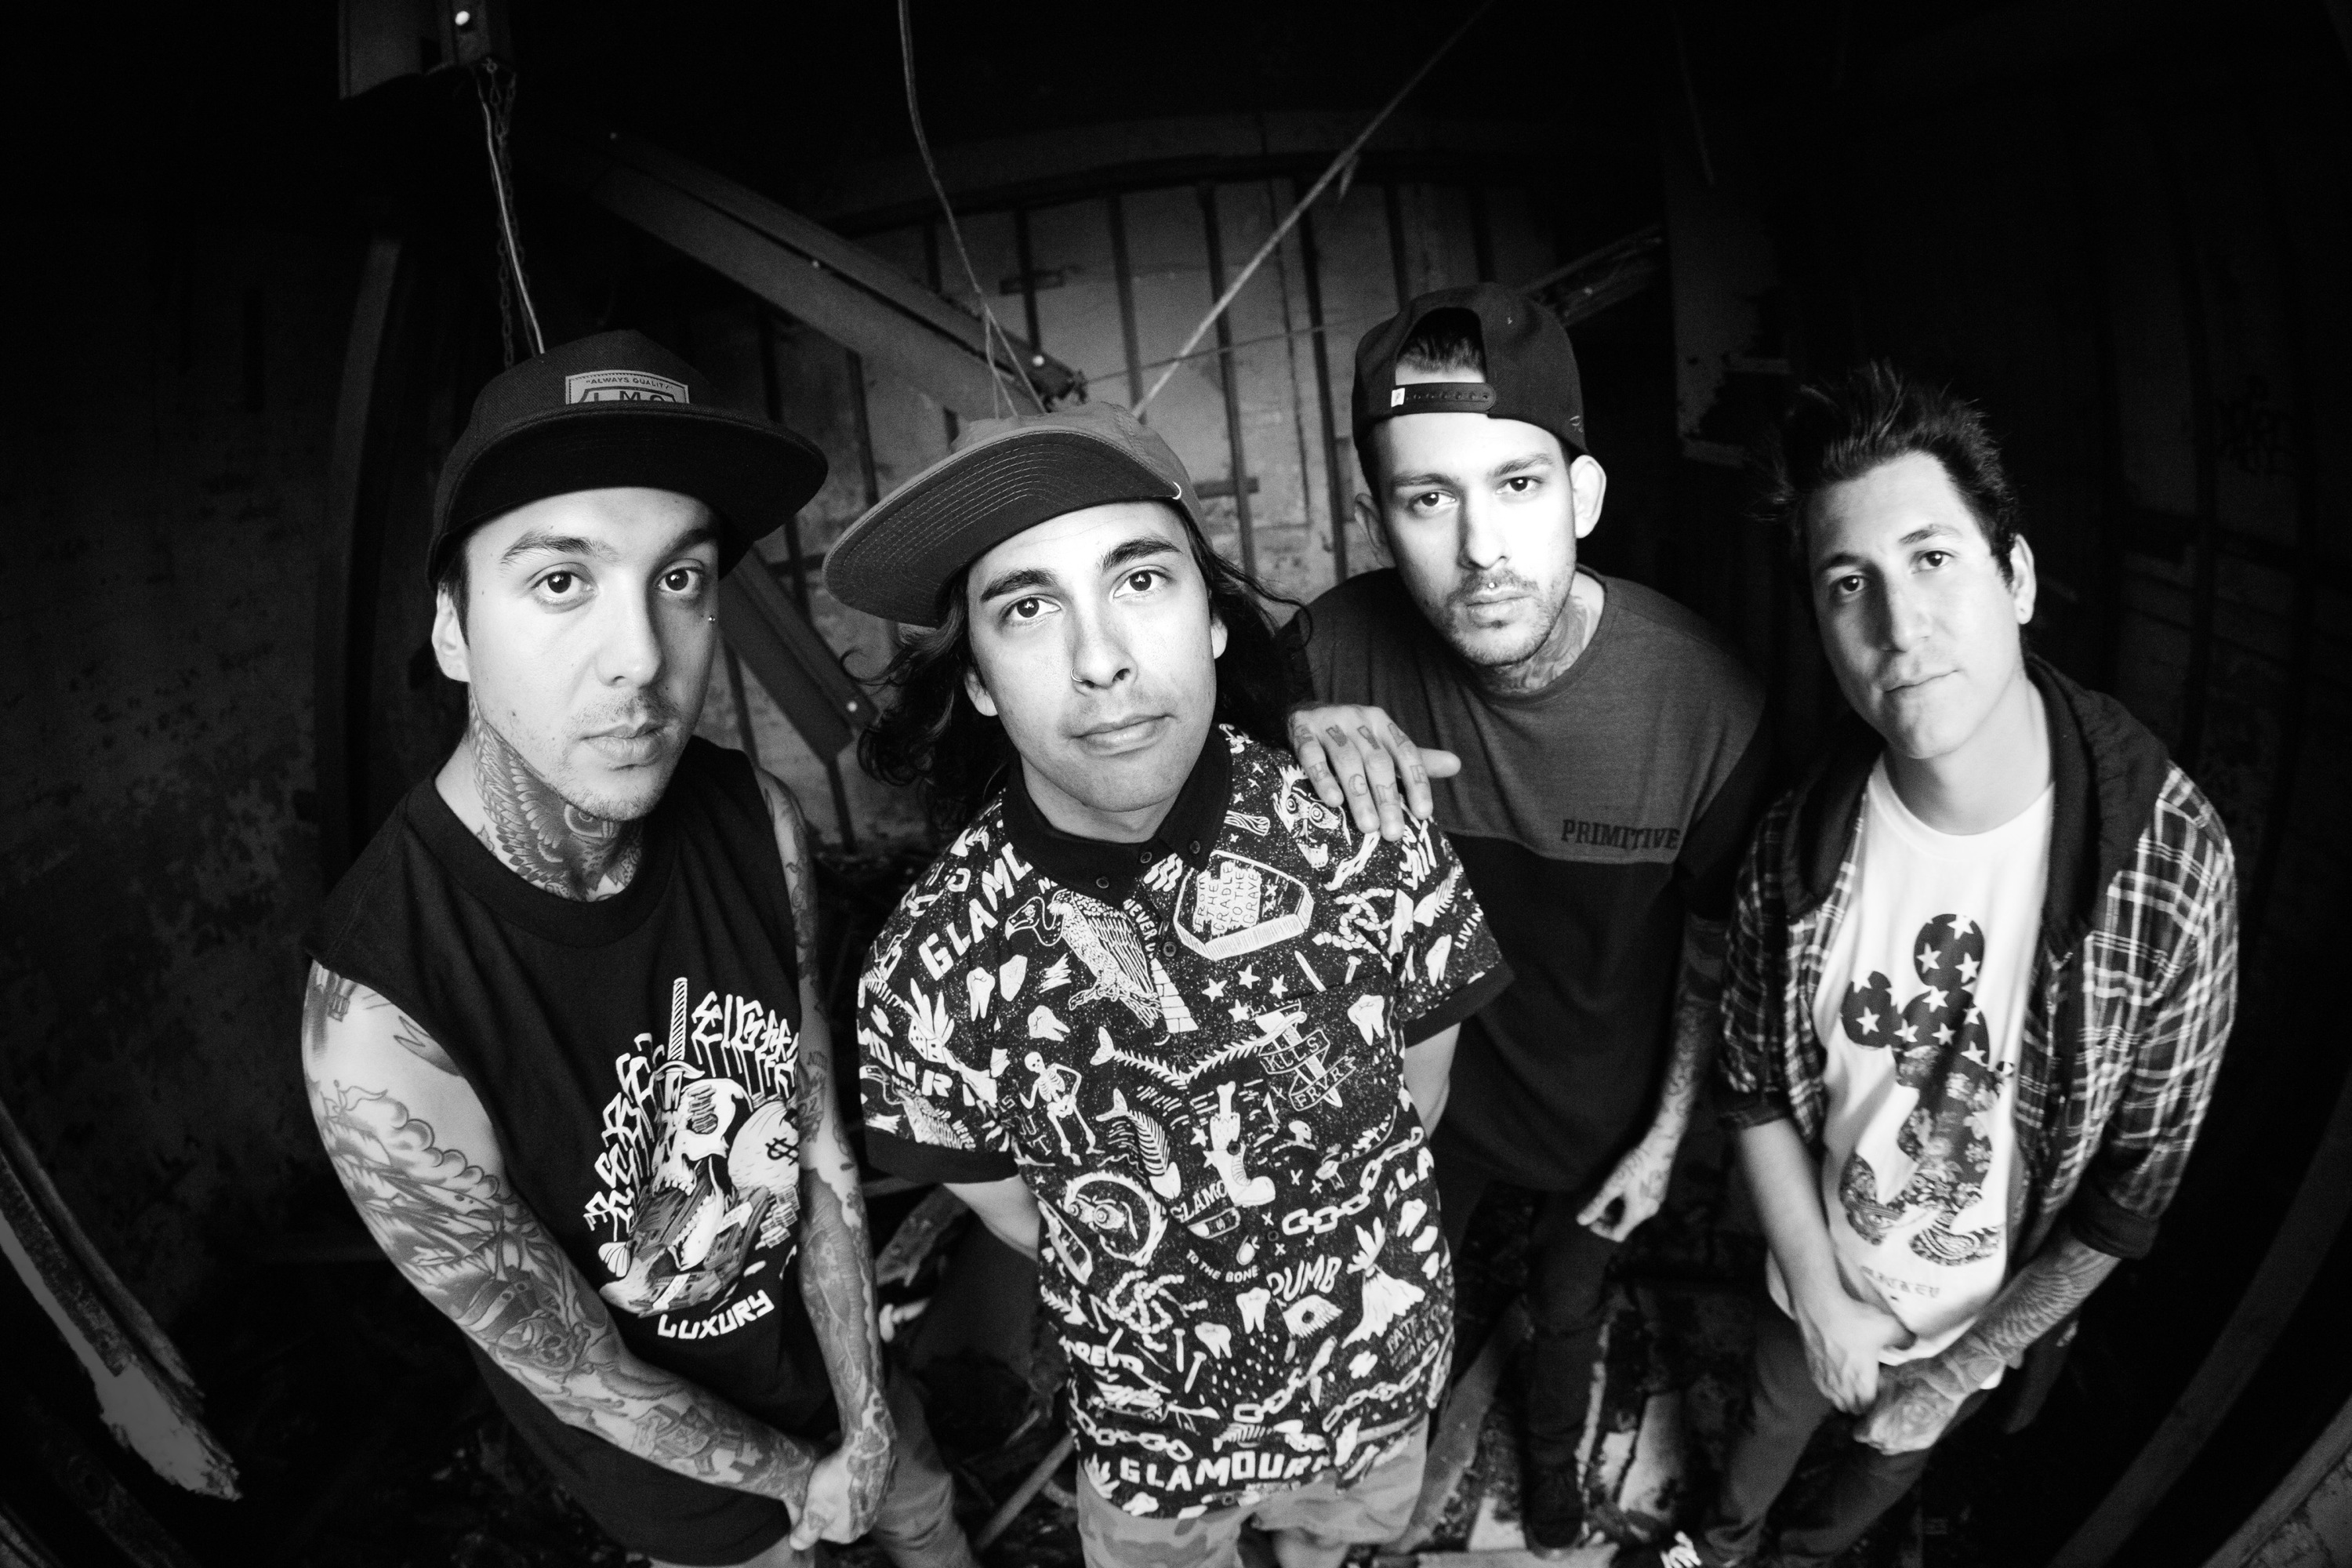 Charitybuzz meet pierce the veil at warped tour 2015 including 2 meet pierce the veil at warped tour 2015 including 2 vip tickets m4hsunfo